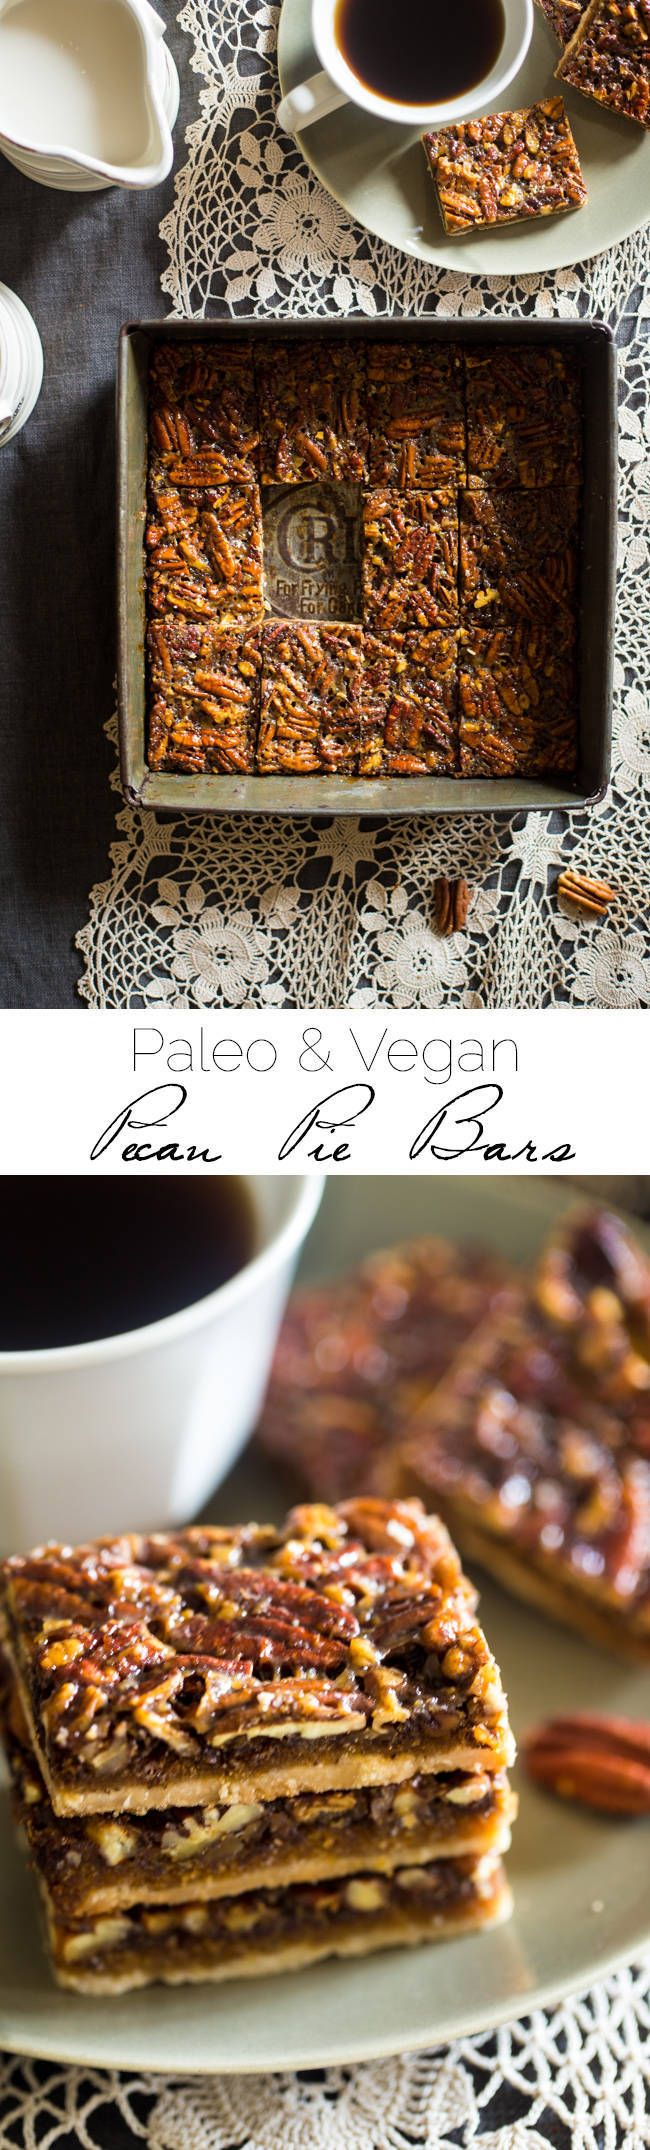 Vegan + Paleo Pecan Pie Bars - These bars are so easy to make and only have 6 ingredients. You would never know they're secretly a healthy, gluten free, and vegan-friendly treat that's perfect for Thanksgiving! | Foodfaithfitness.com | @FoodFaithFit: